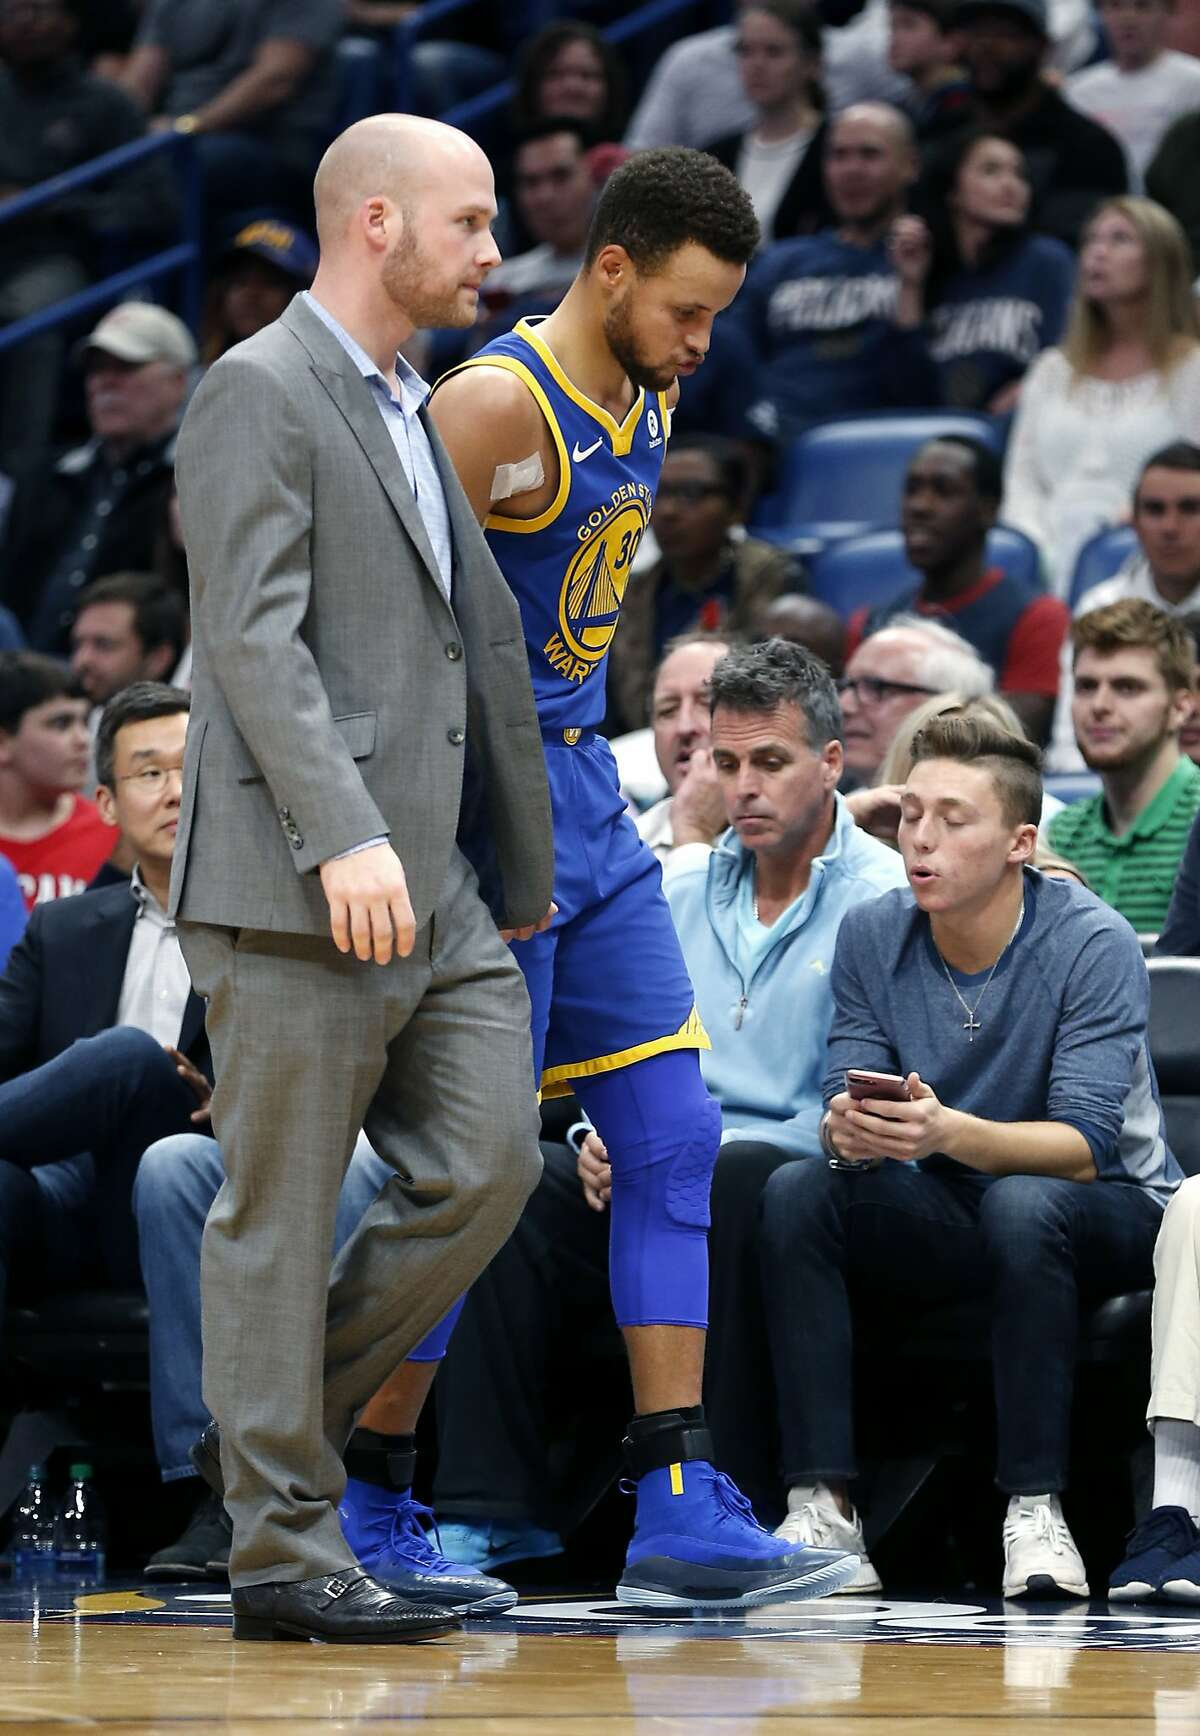 Golden State Warriors guard Stephen Curry limps off the court to the locker room in the second half of an NBA basketball game against the New Orleans Pelicans in New Orleans, Monday, Dec. 4, 2017. The Warriors won 125-115. (AP Photo/Gerald Herbert)